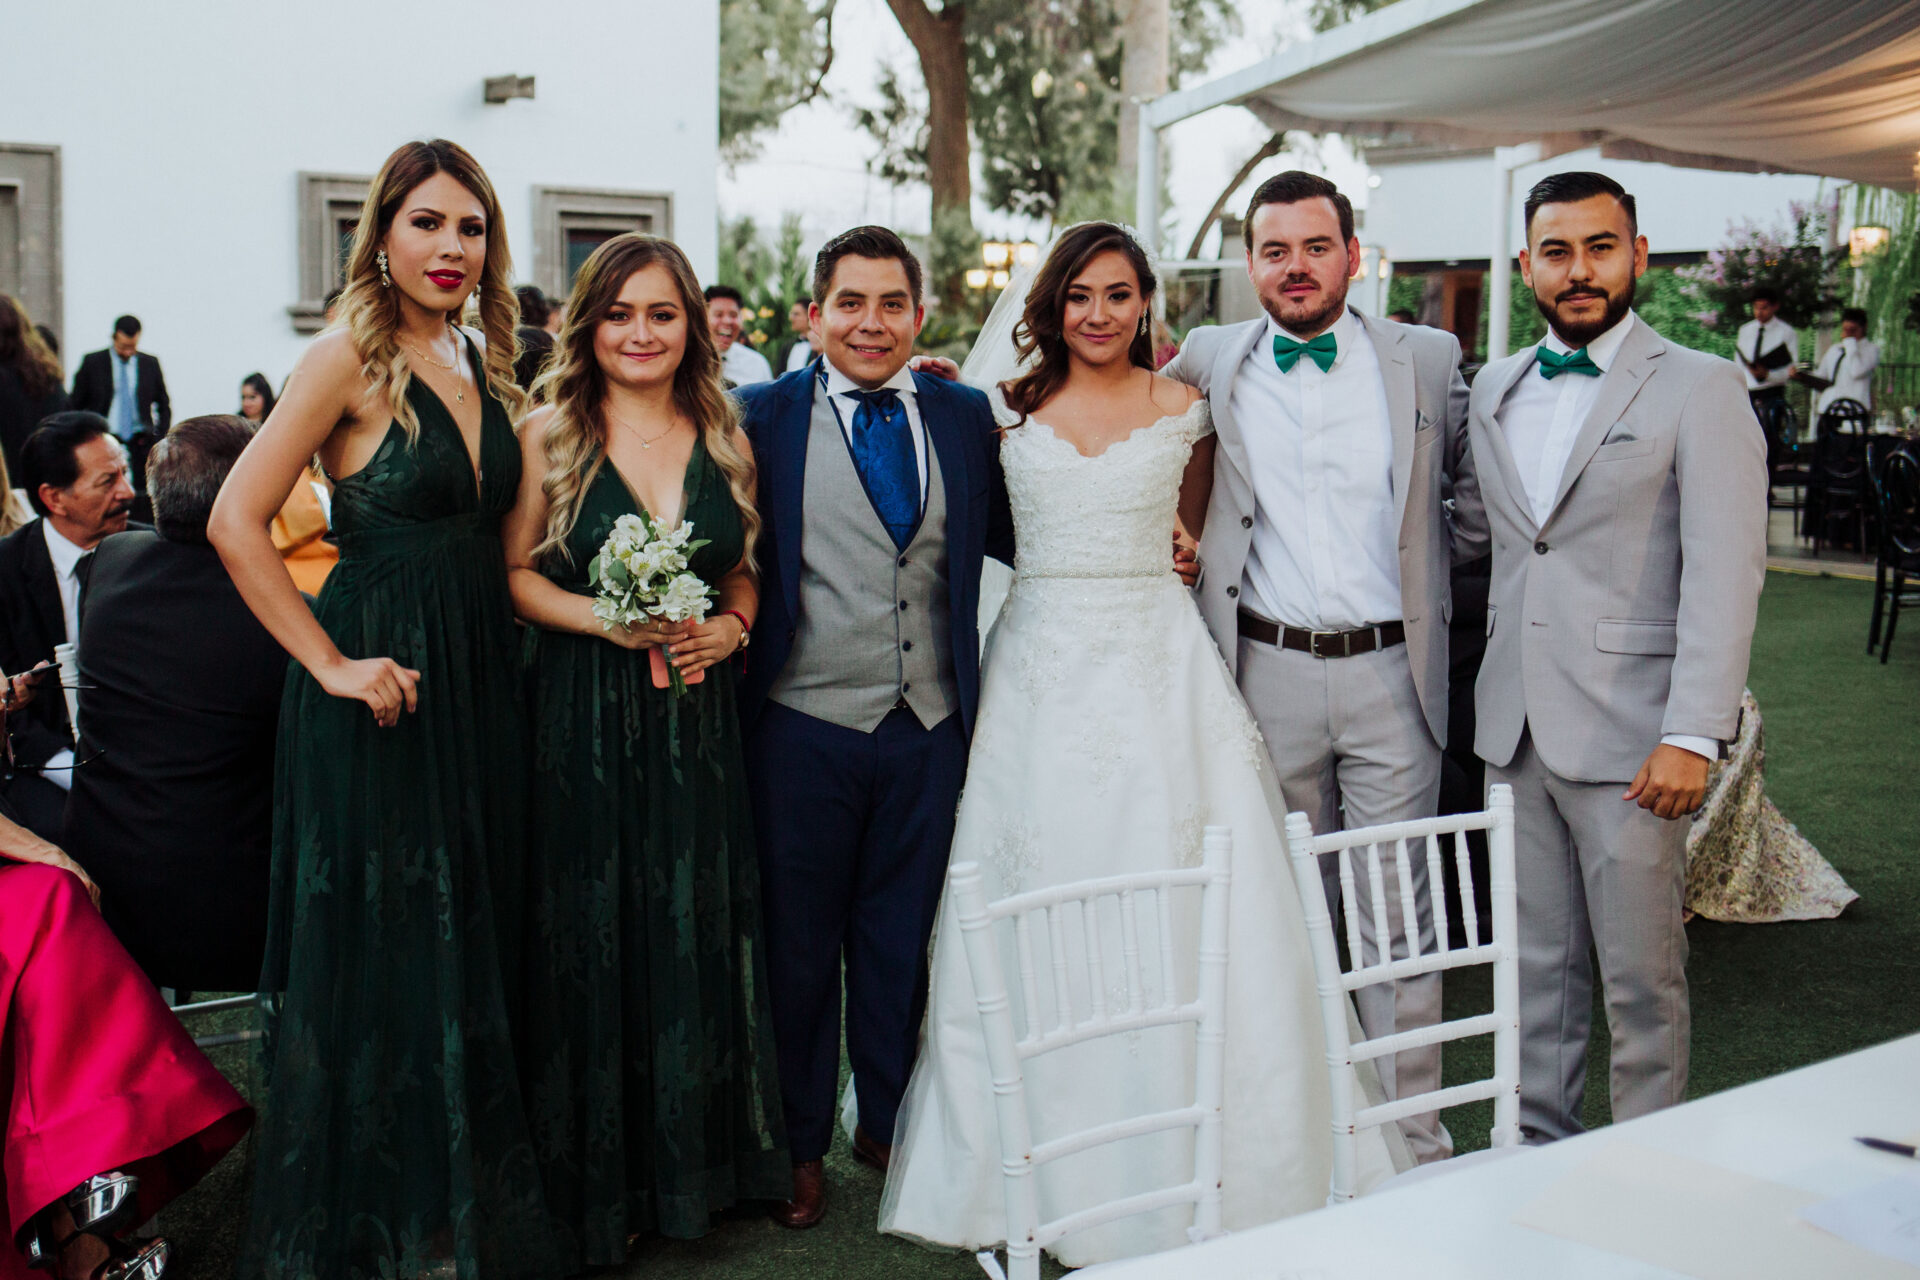 javier_noriega_fotografo_bodas_torreon_coahuila_zacatecas_wedding_photographer38a